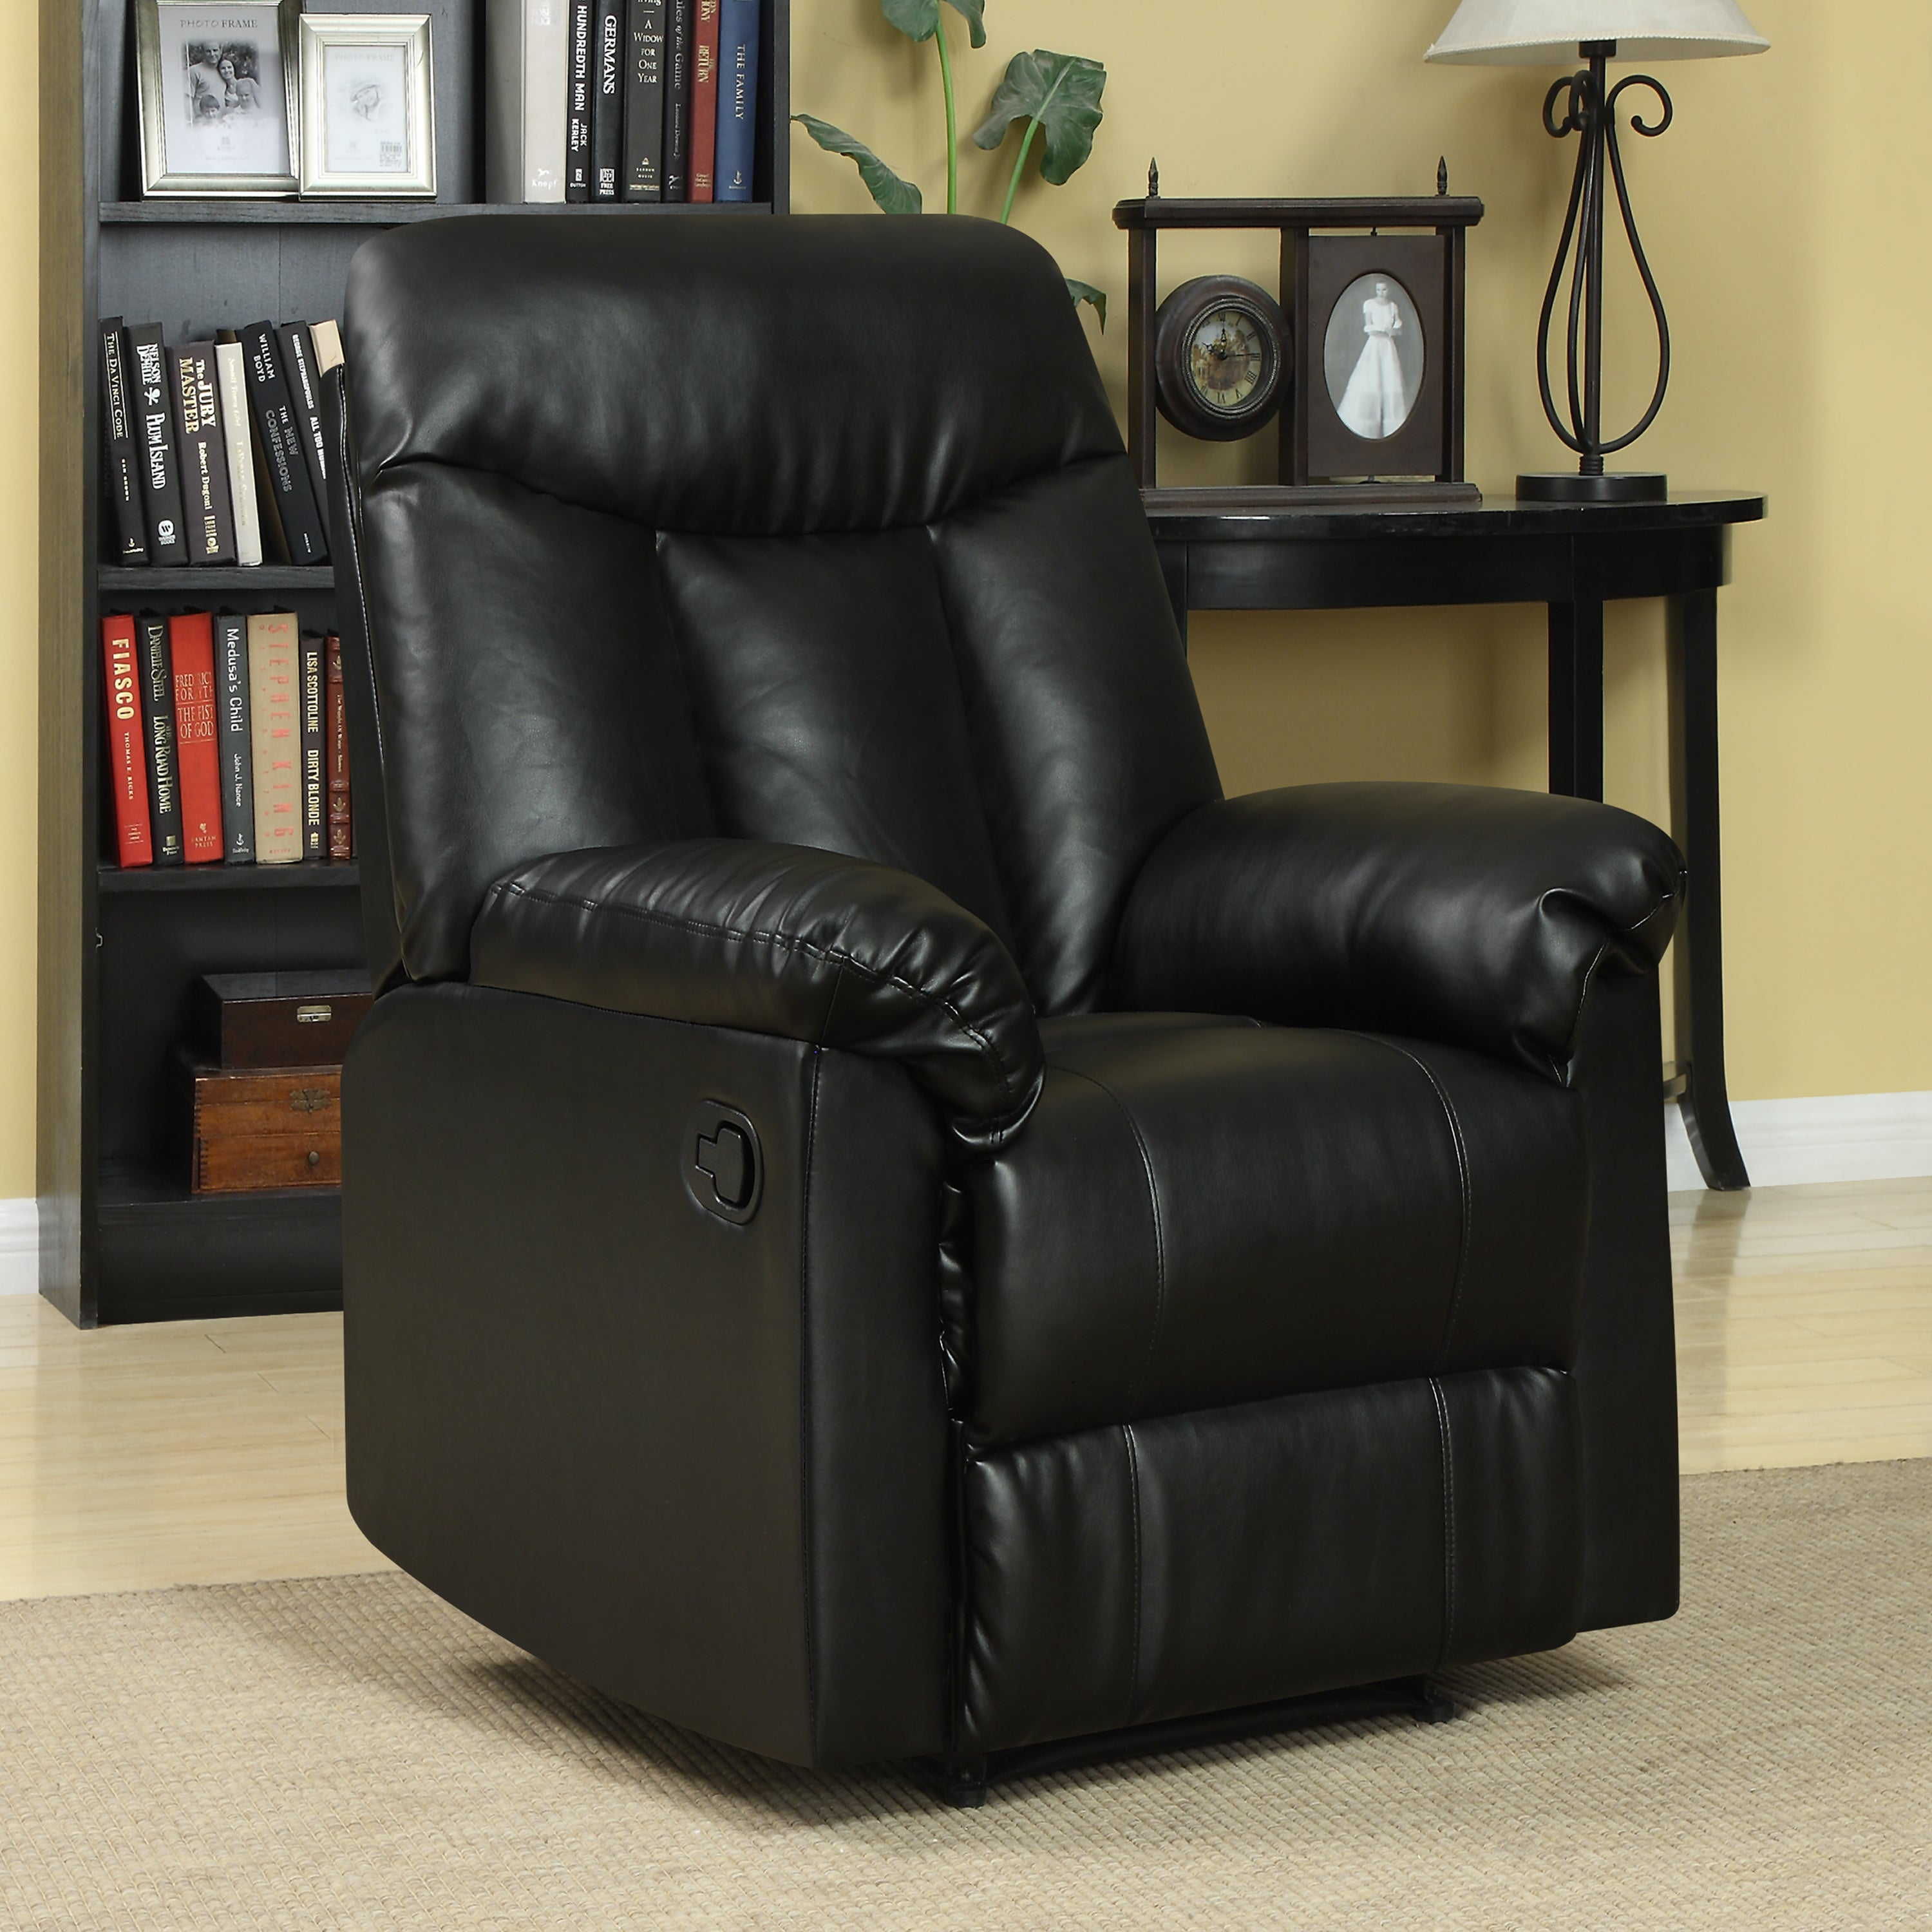 Portfolio ProLounger Wall Hugger Black Renu Leather Recliner at Sears.com